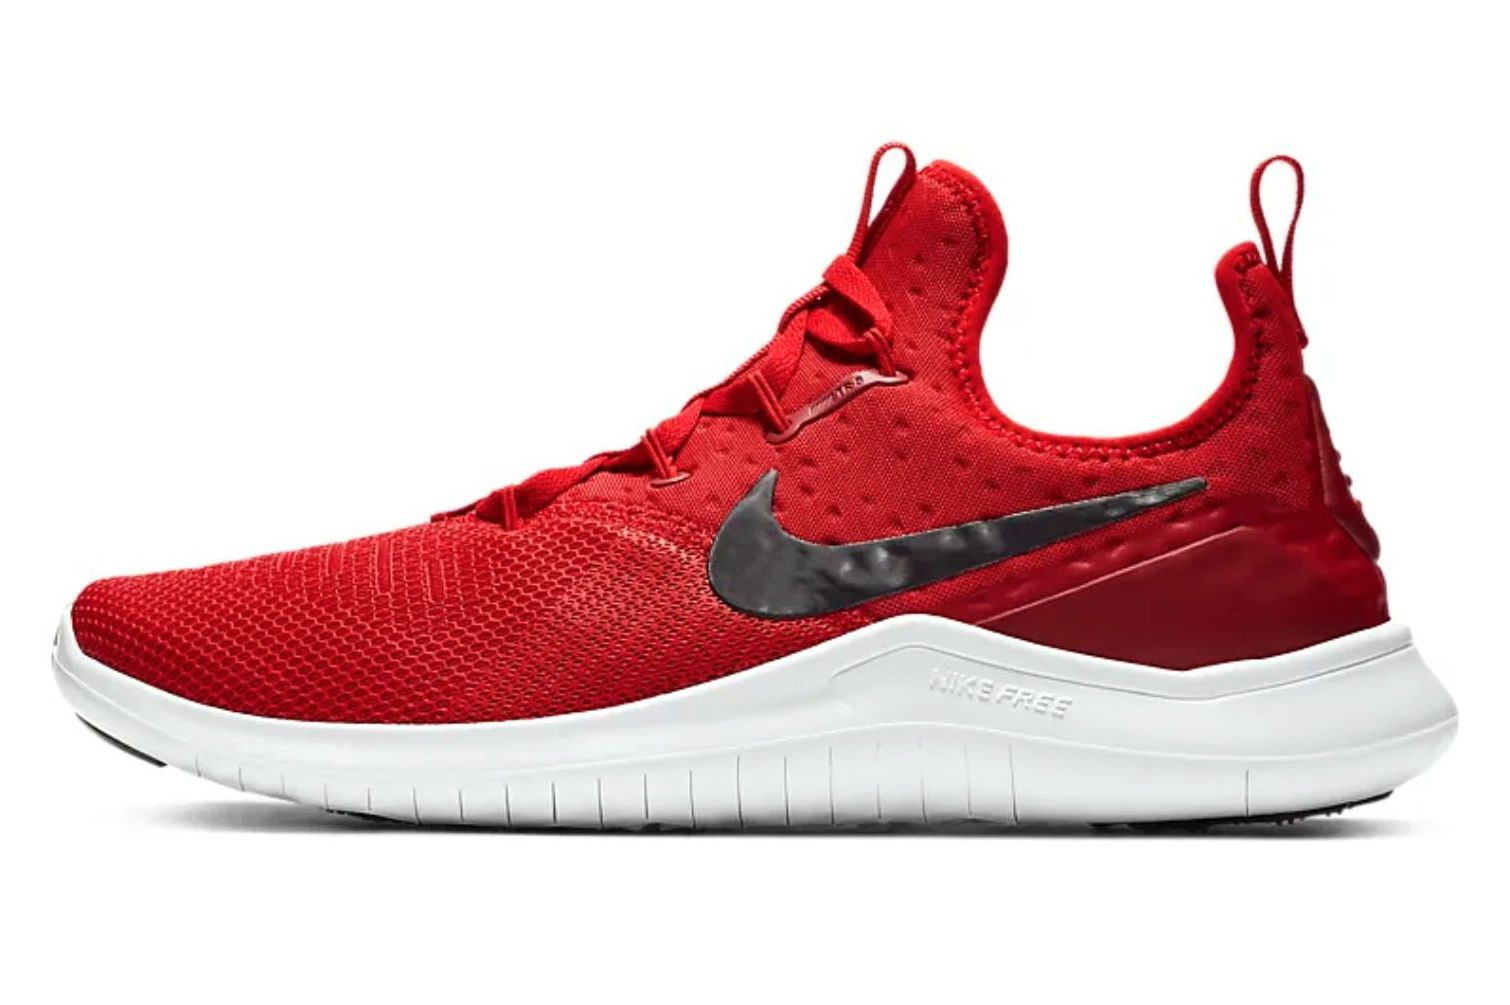 sports shoes 48a2a 06400 Best Cross Training Shoes - Training Shoes for Runners 2019